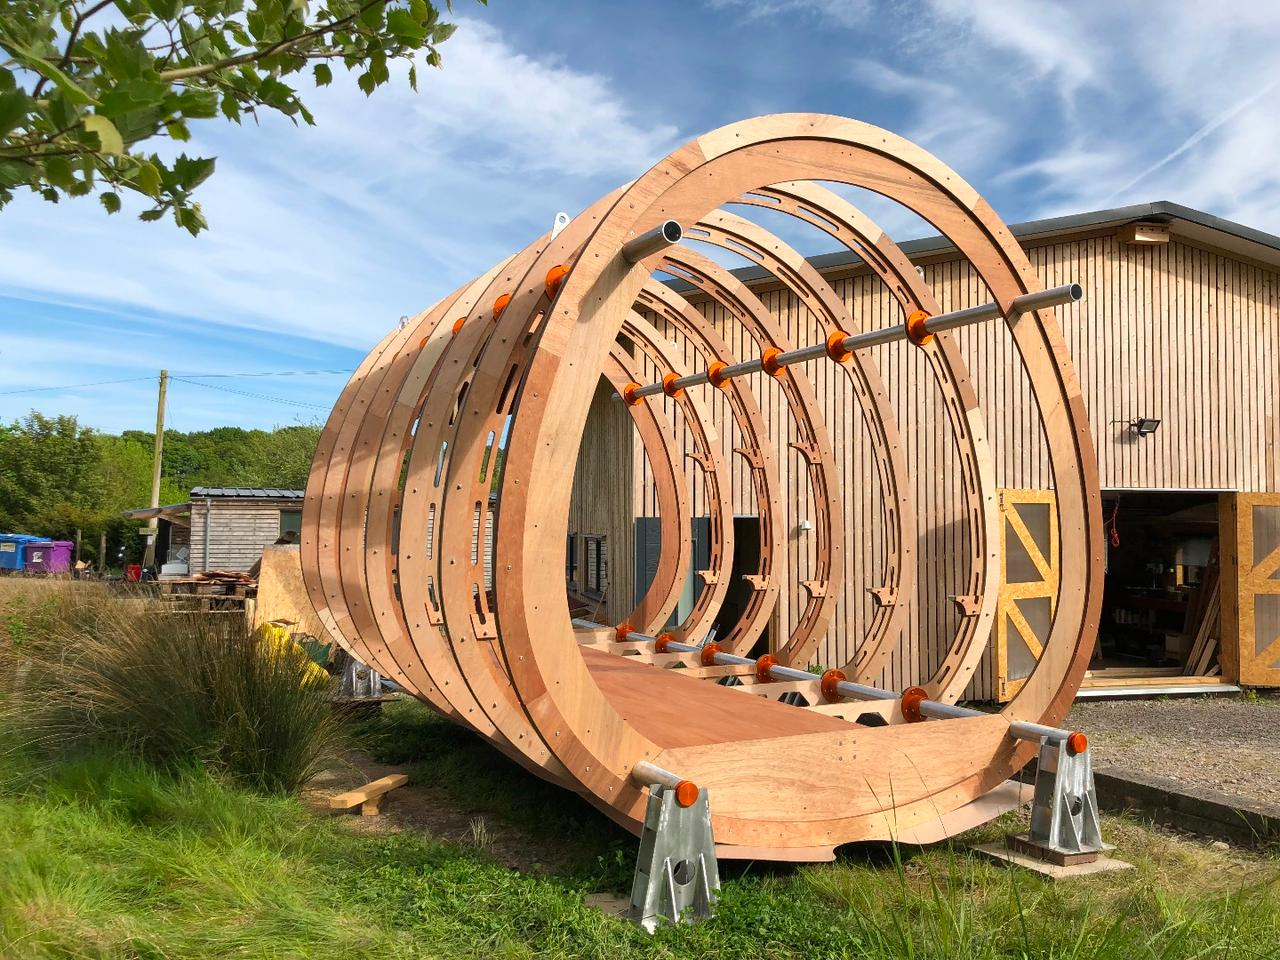 The Fuselage's shell is built from sustainably-sourced wood